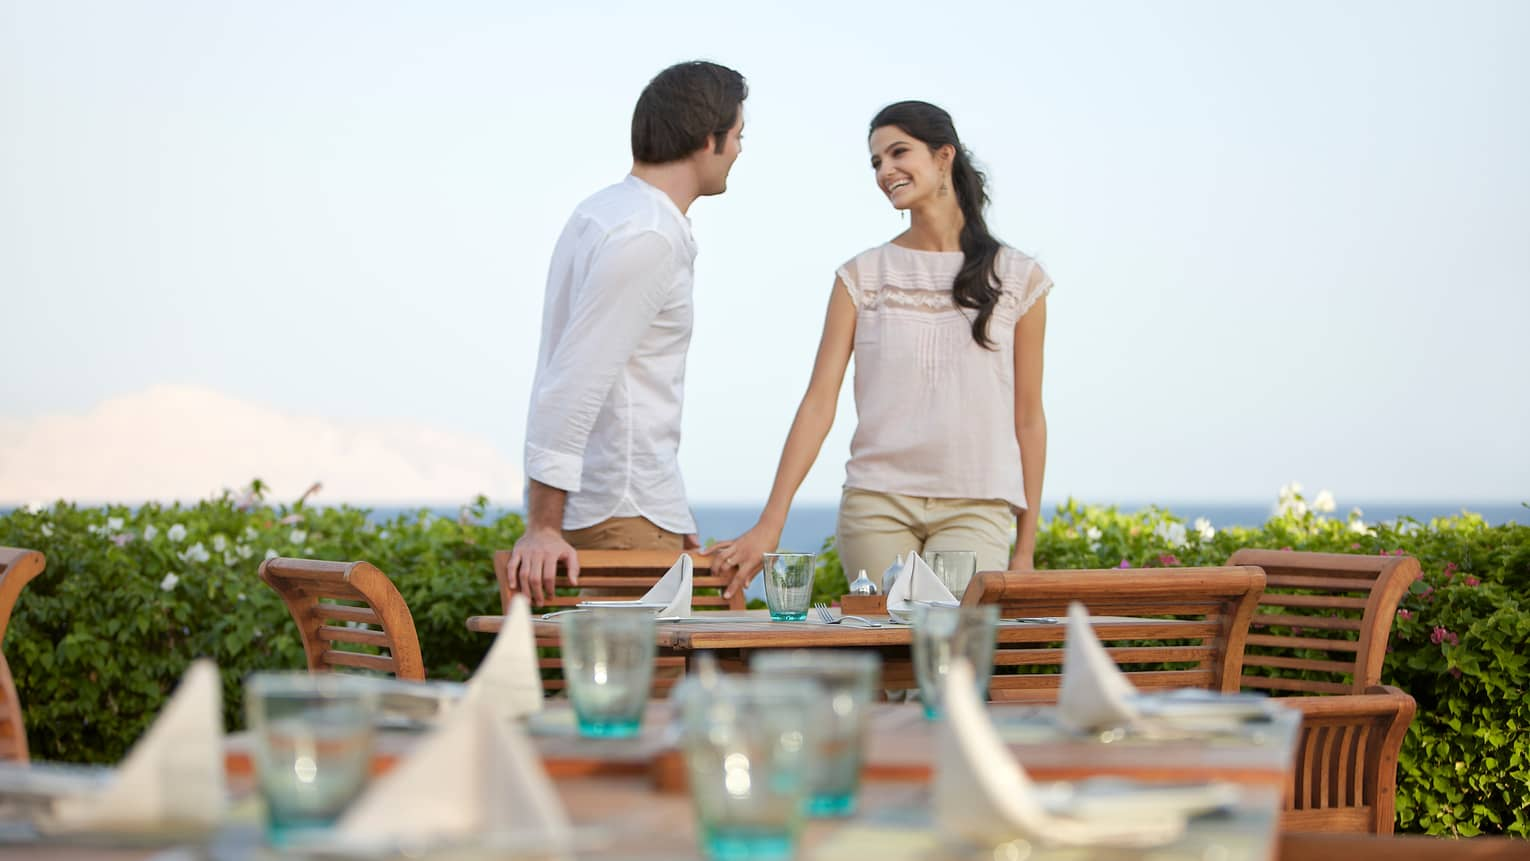 Smiling man and woman stand by wood patio chairs, dining table at Reef Grill